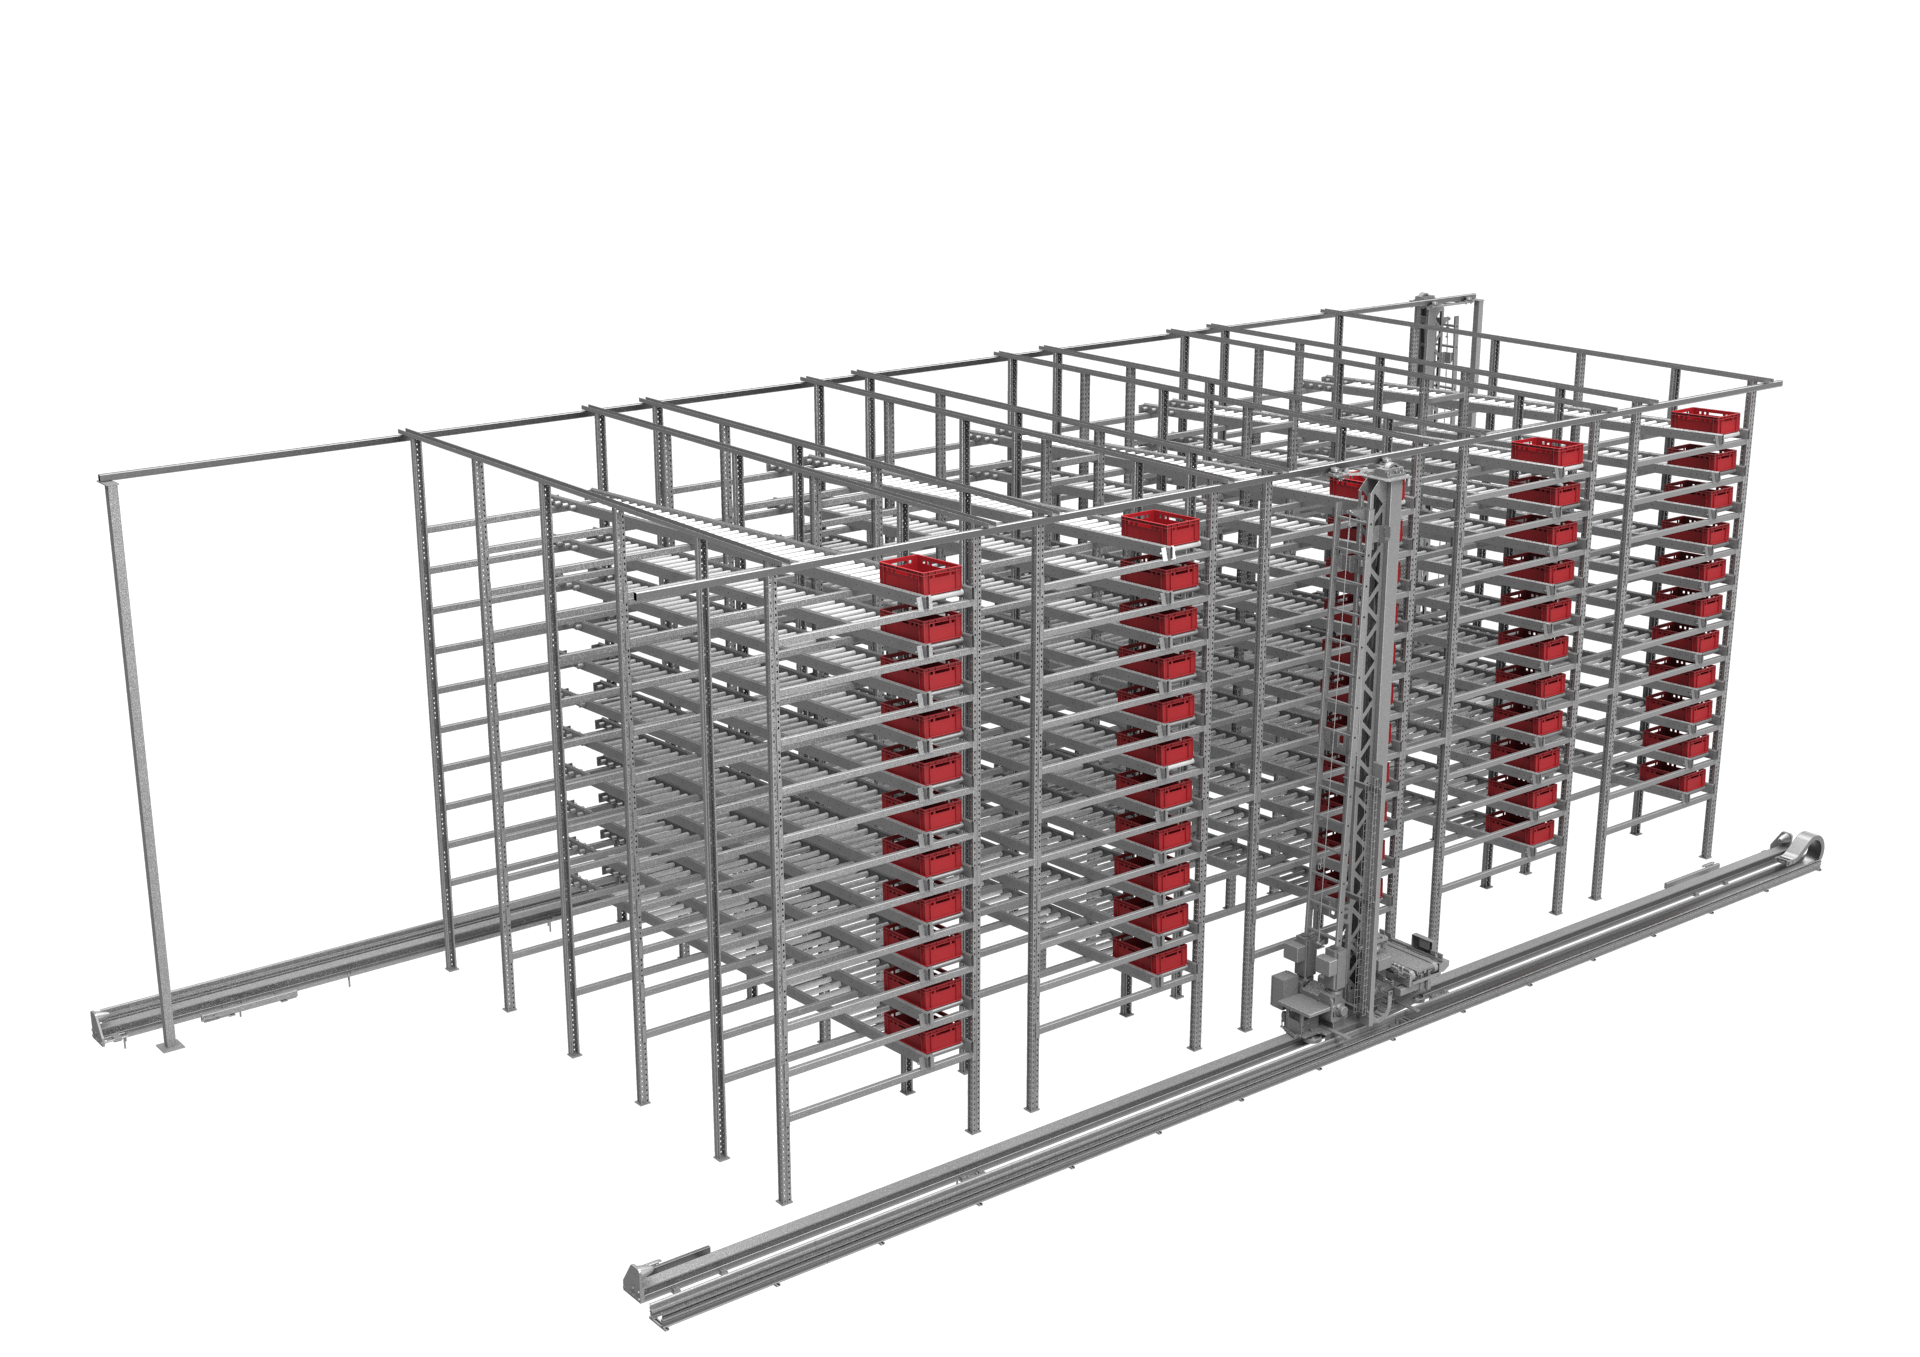 Fully Automated Warehouse